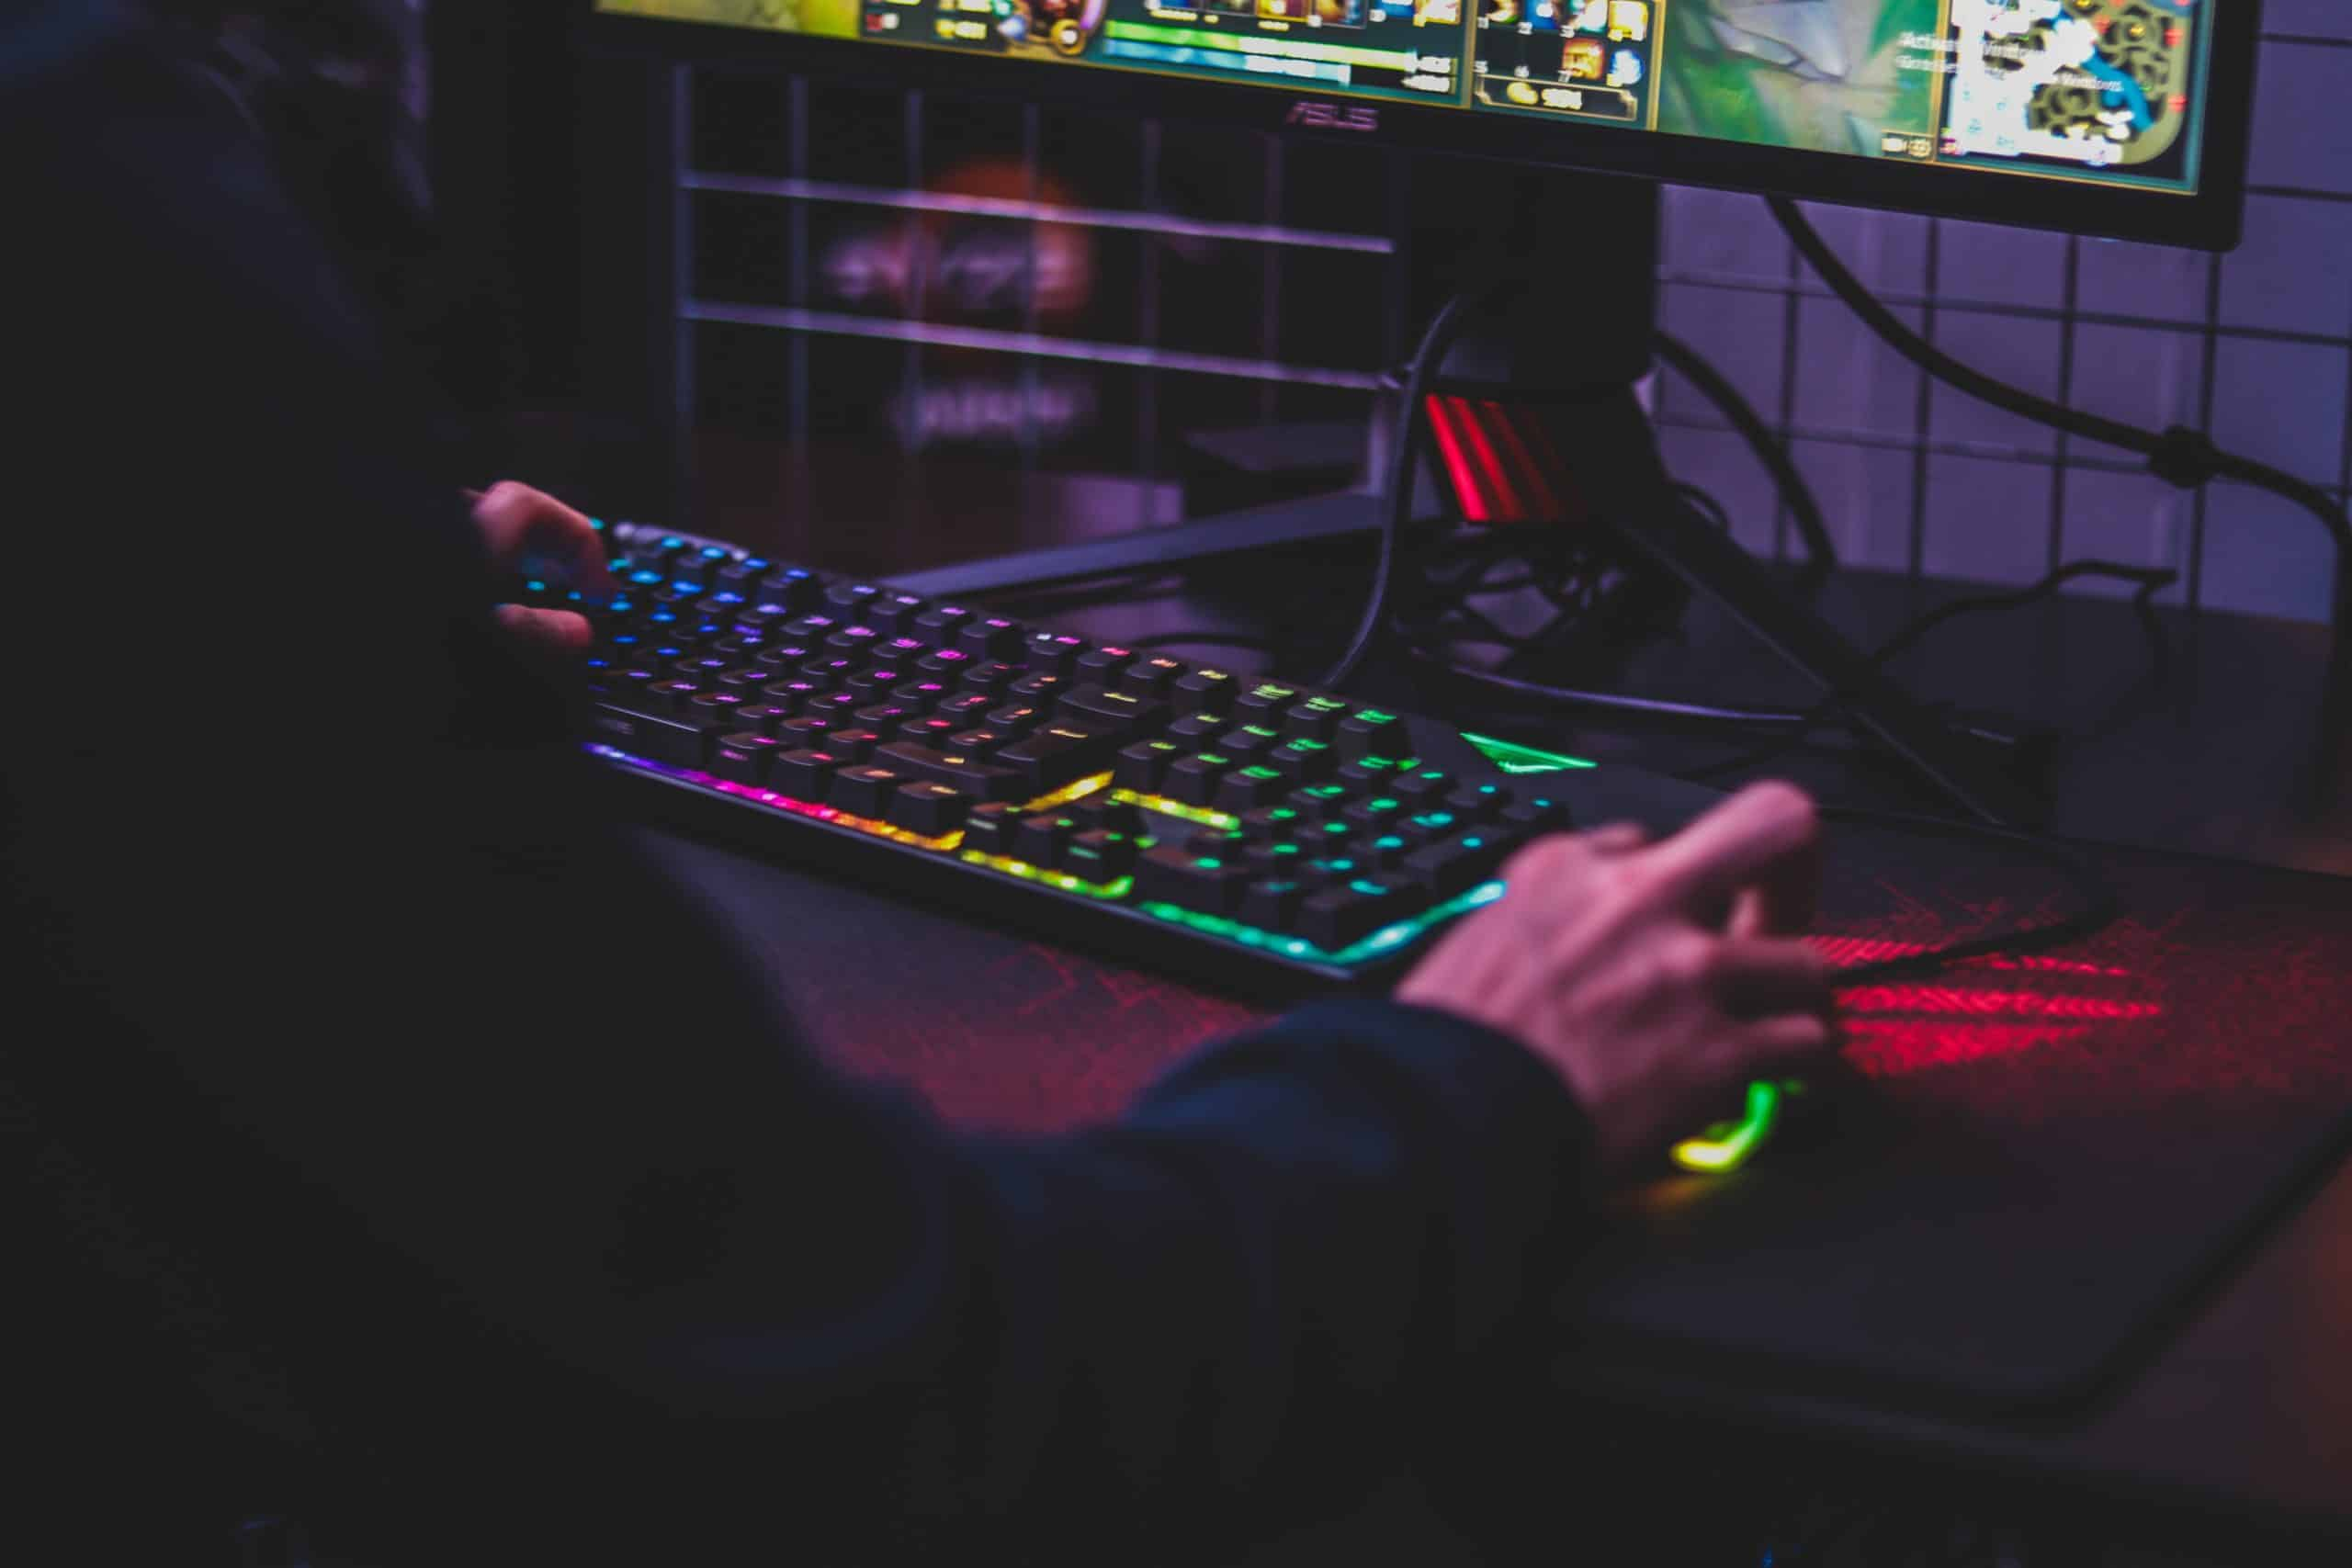 Game Online PC: Consoles Are A Thing Of The Past